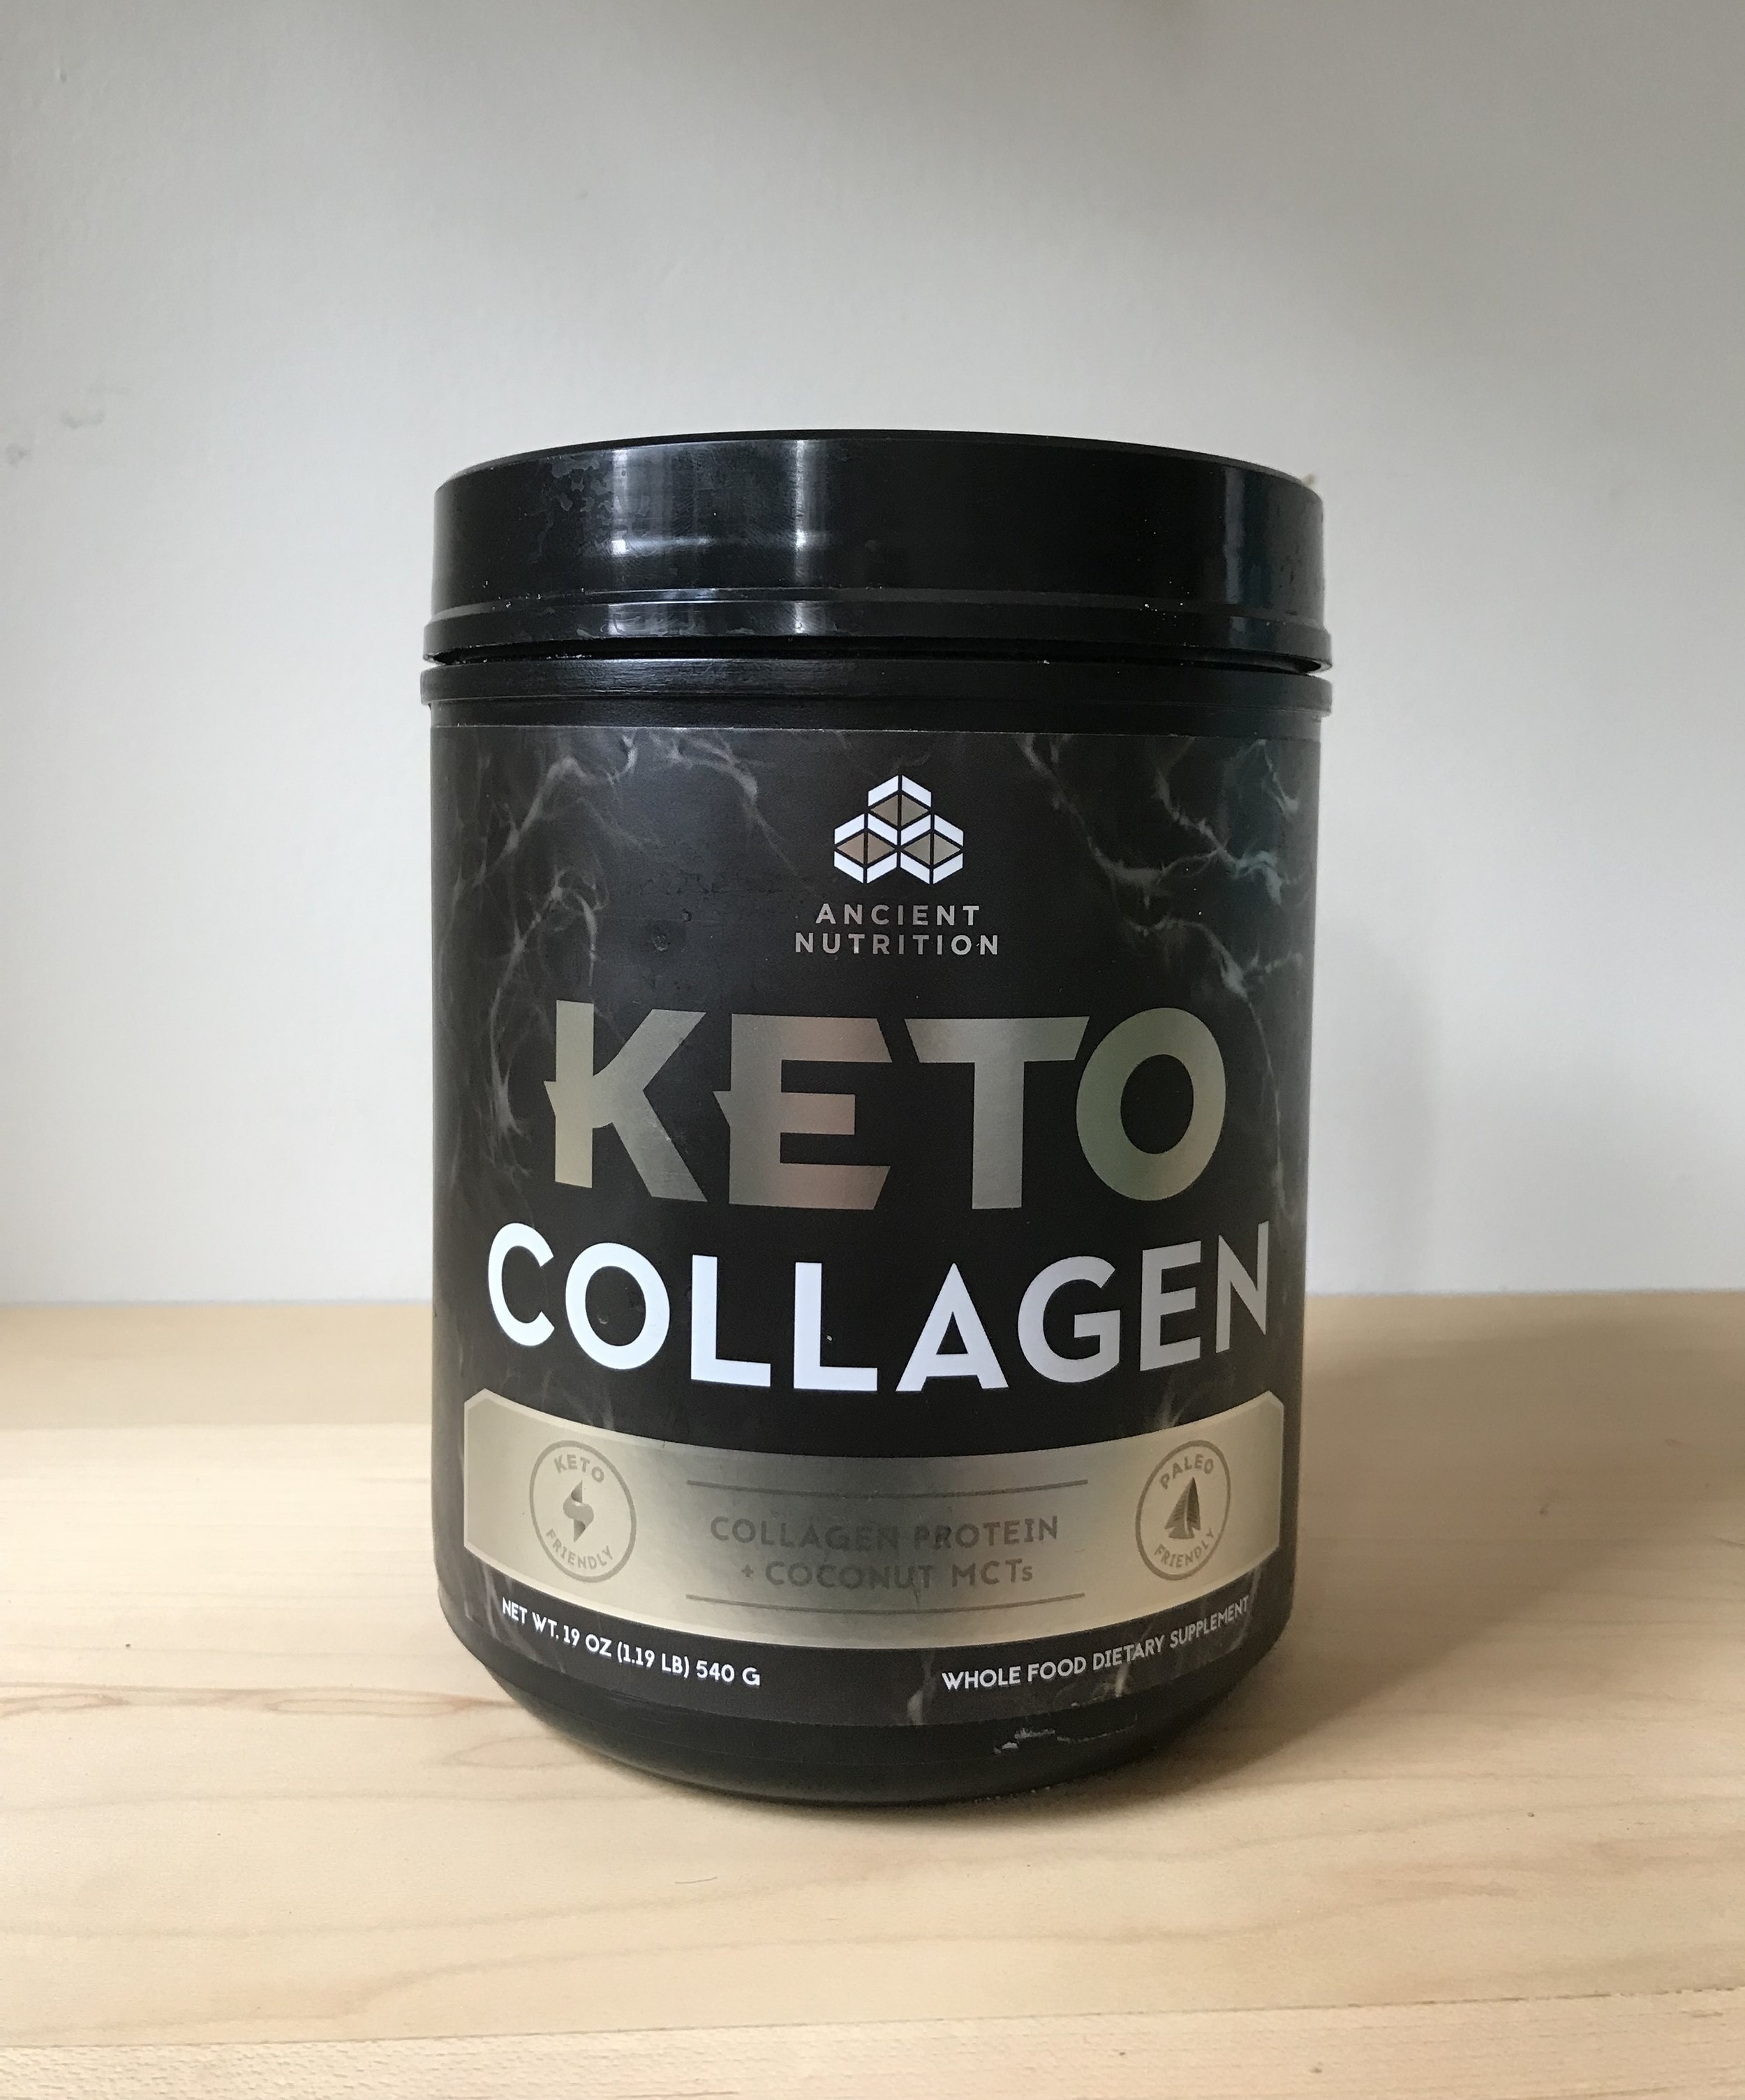 Ancient Nutrition KETO Collagen + Coconut MCTs $49.95